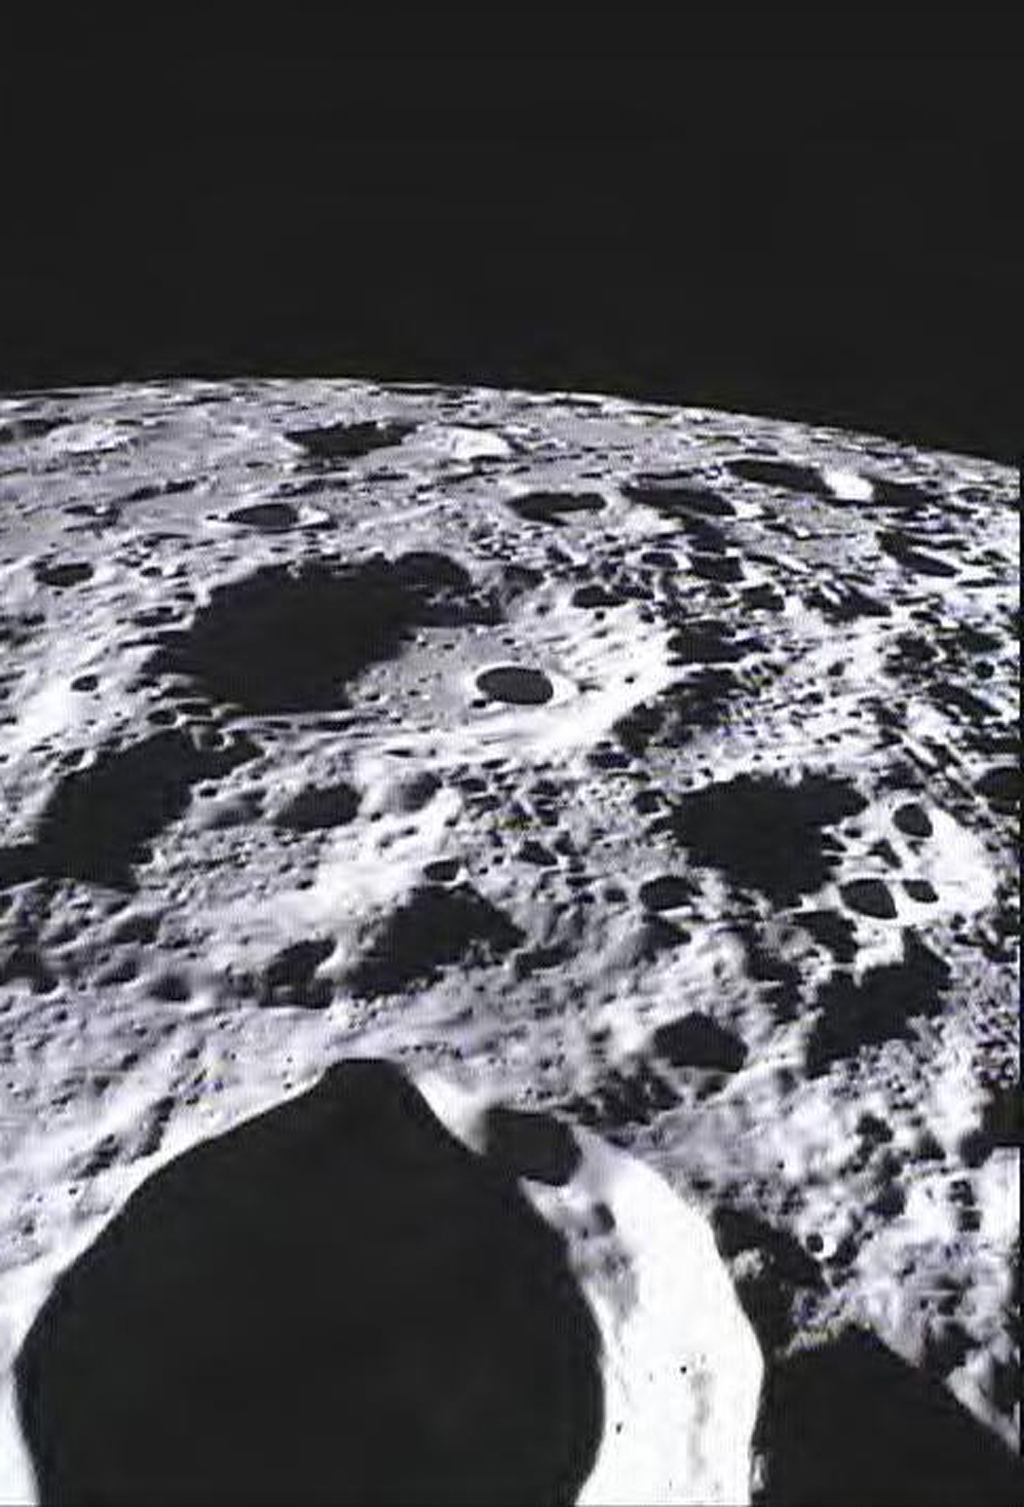 This image of the lunar surface was taken by NASA's MoonKAM system onboard the Ebb spacecraft and shows Crater Poinsot located on the northern part of the moon's far side.